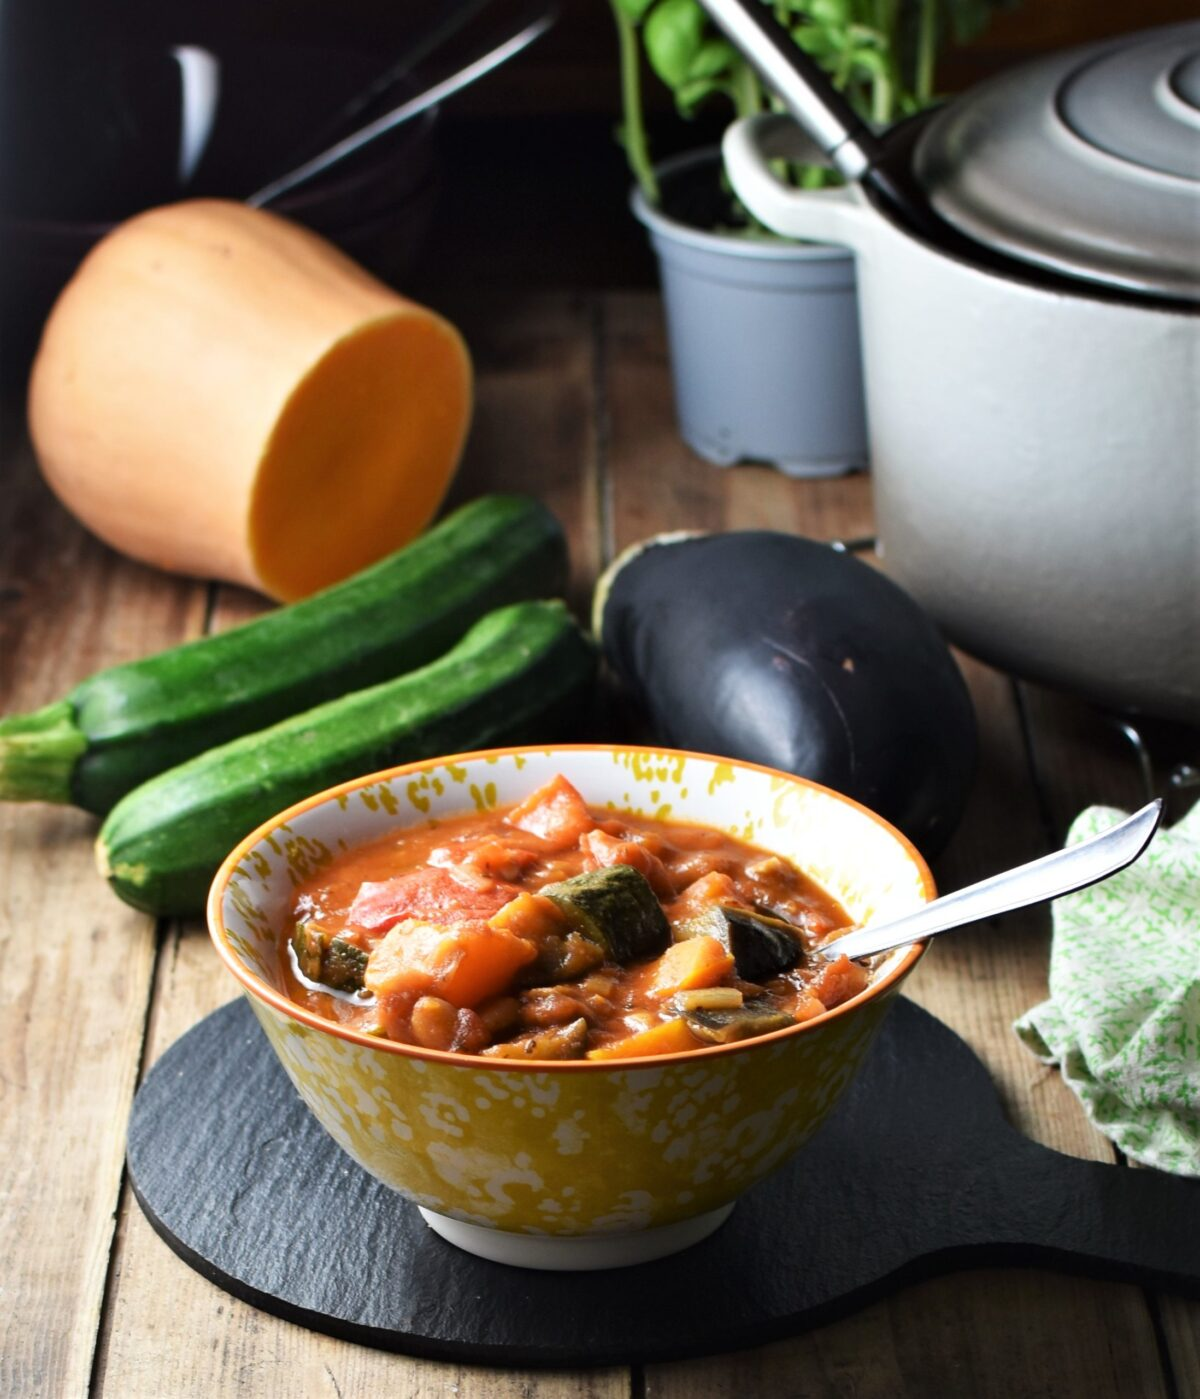 Side view of vegetable stew in yellow patterned bowl with spoon, zucchini, eggplant, squash and pot in background.